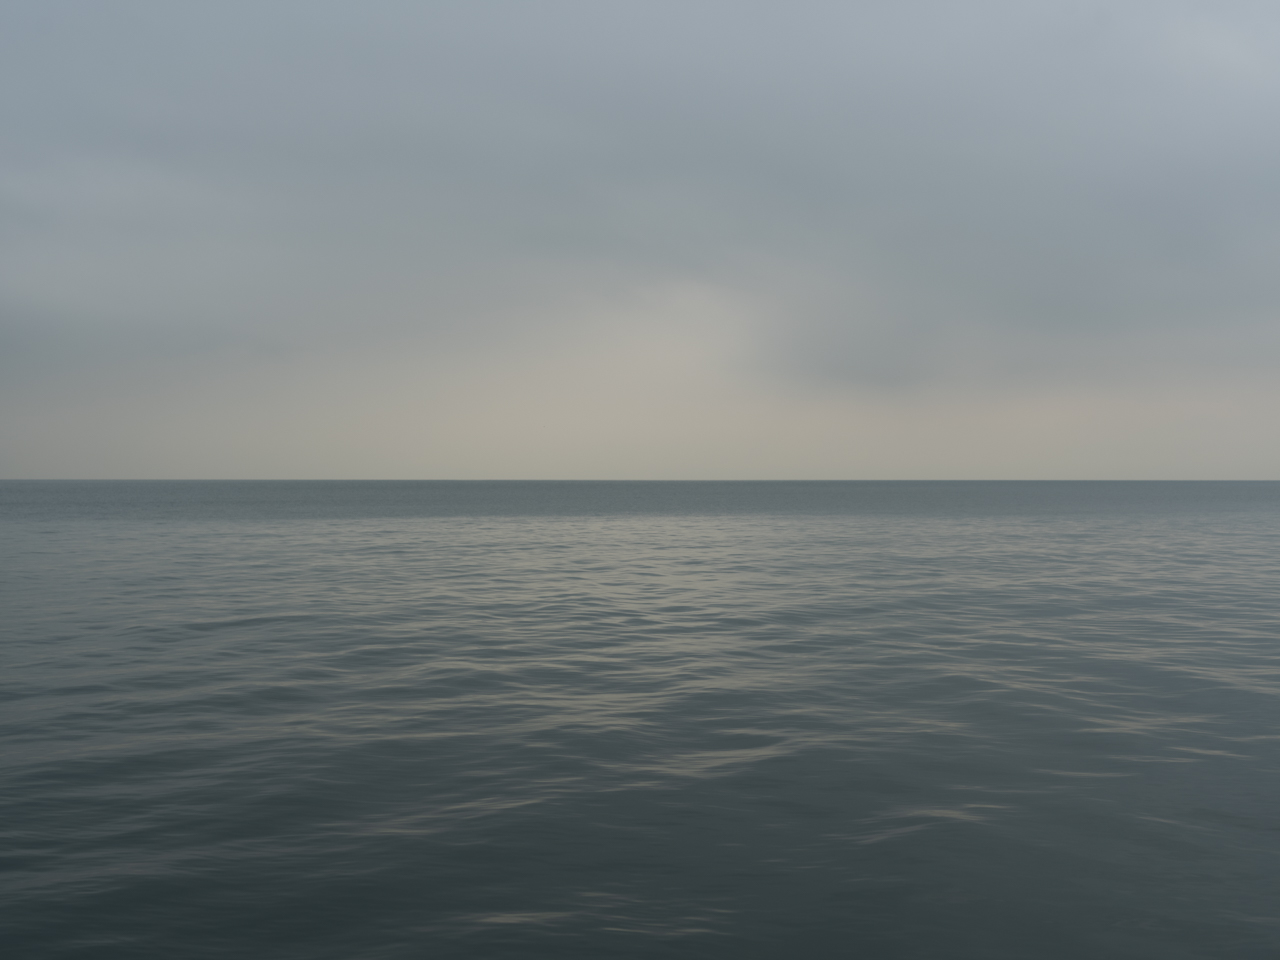 overcast blue and green day on Lake Michigan with light at the horizon